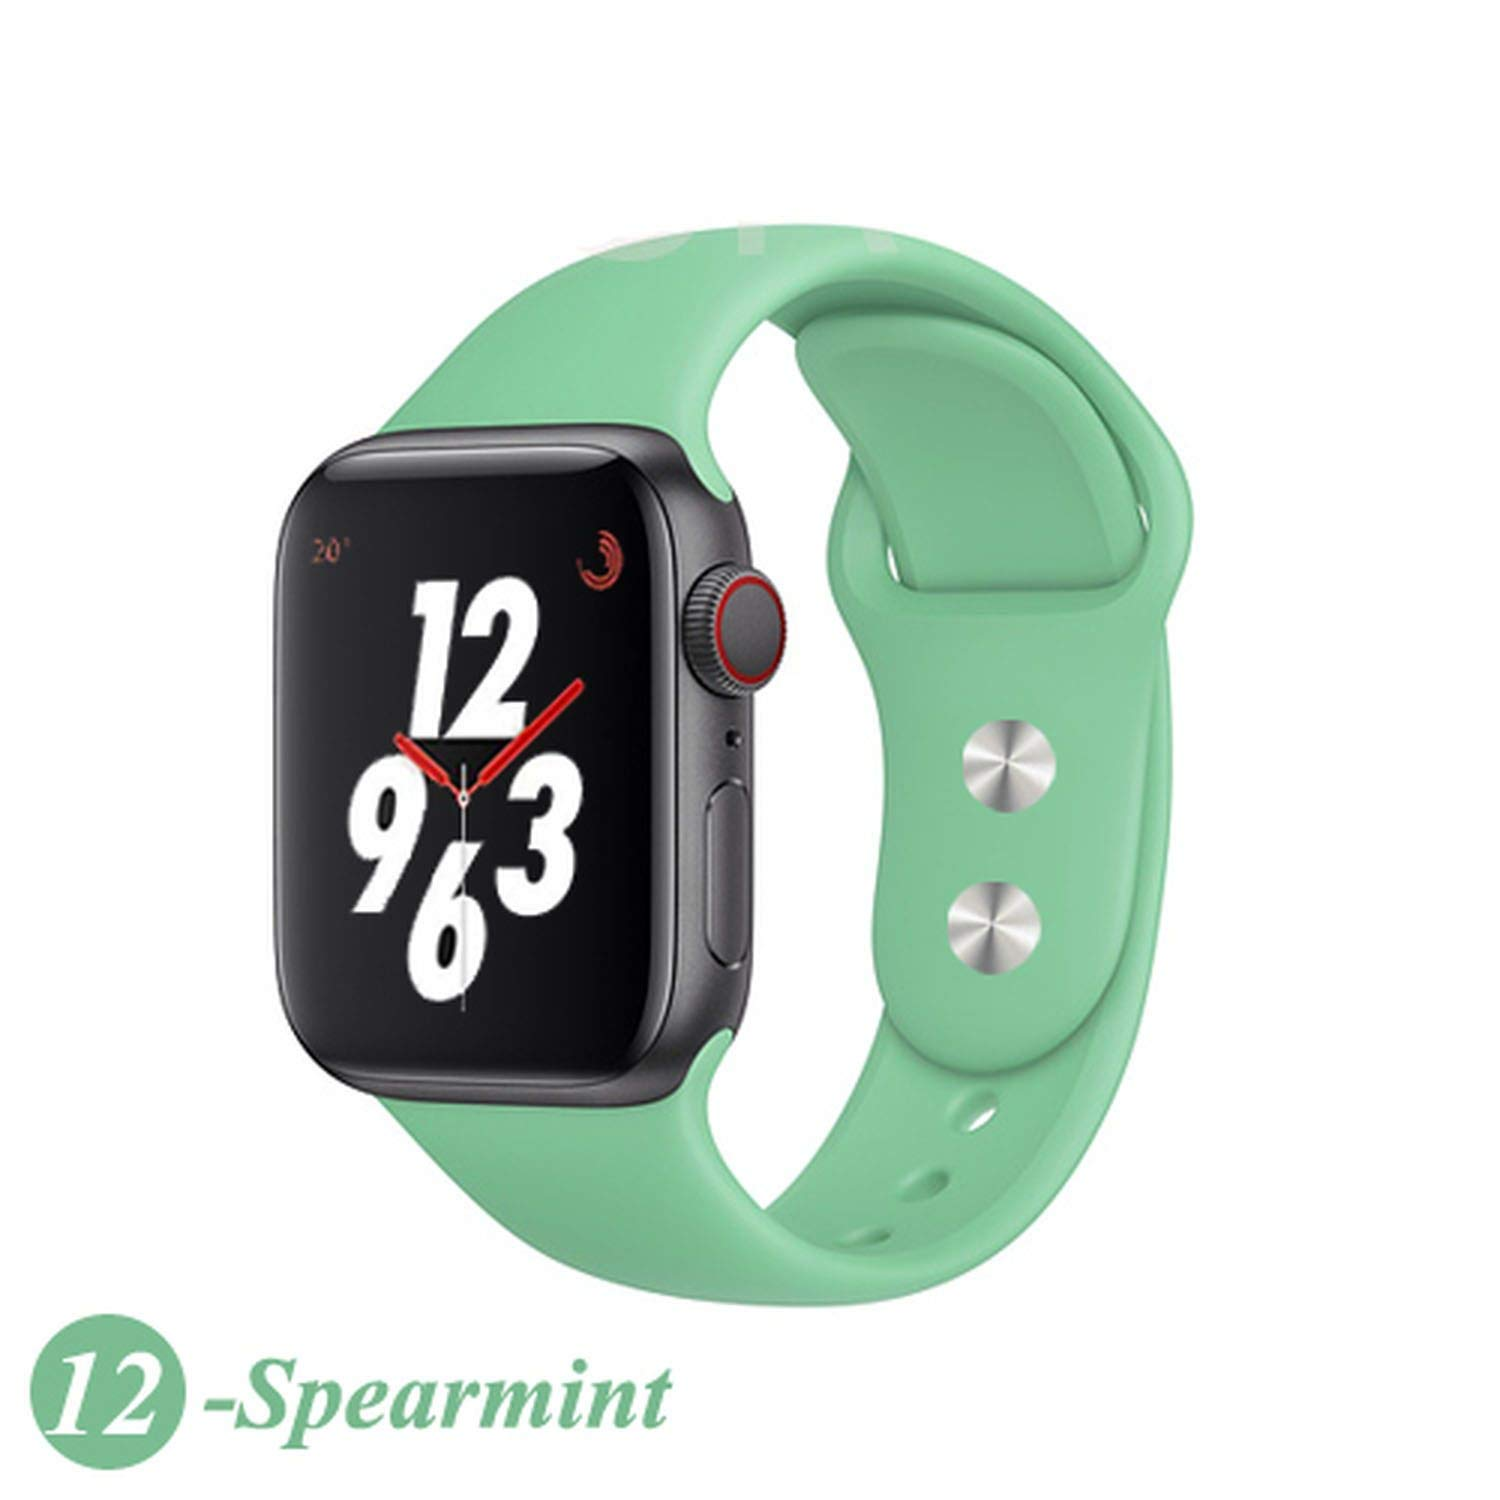 Amazon.com: Strap for Watch Band Silicone Sport Correa 4 ...